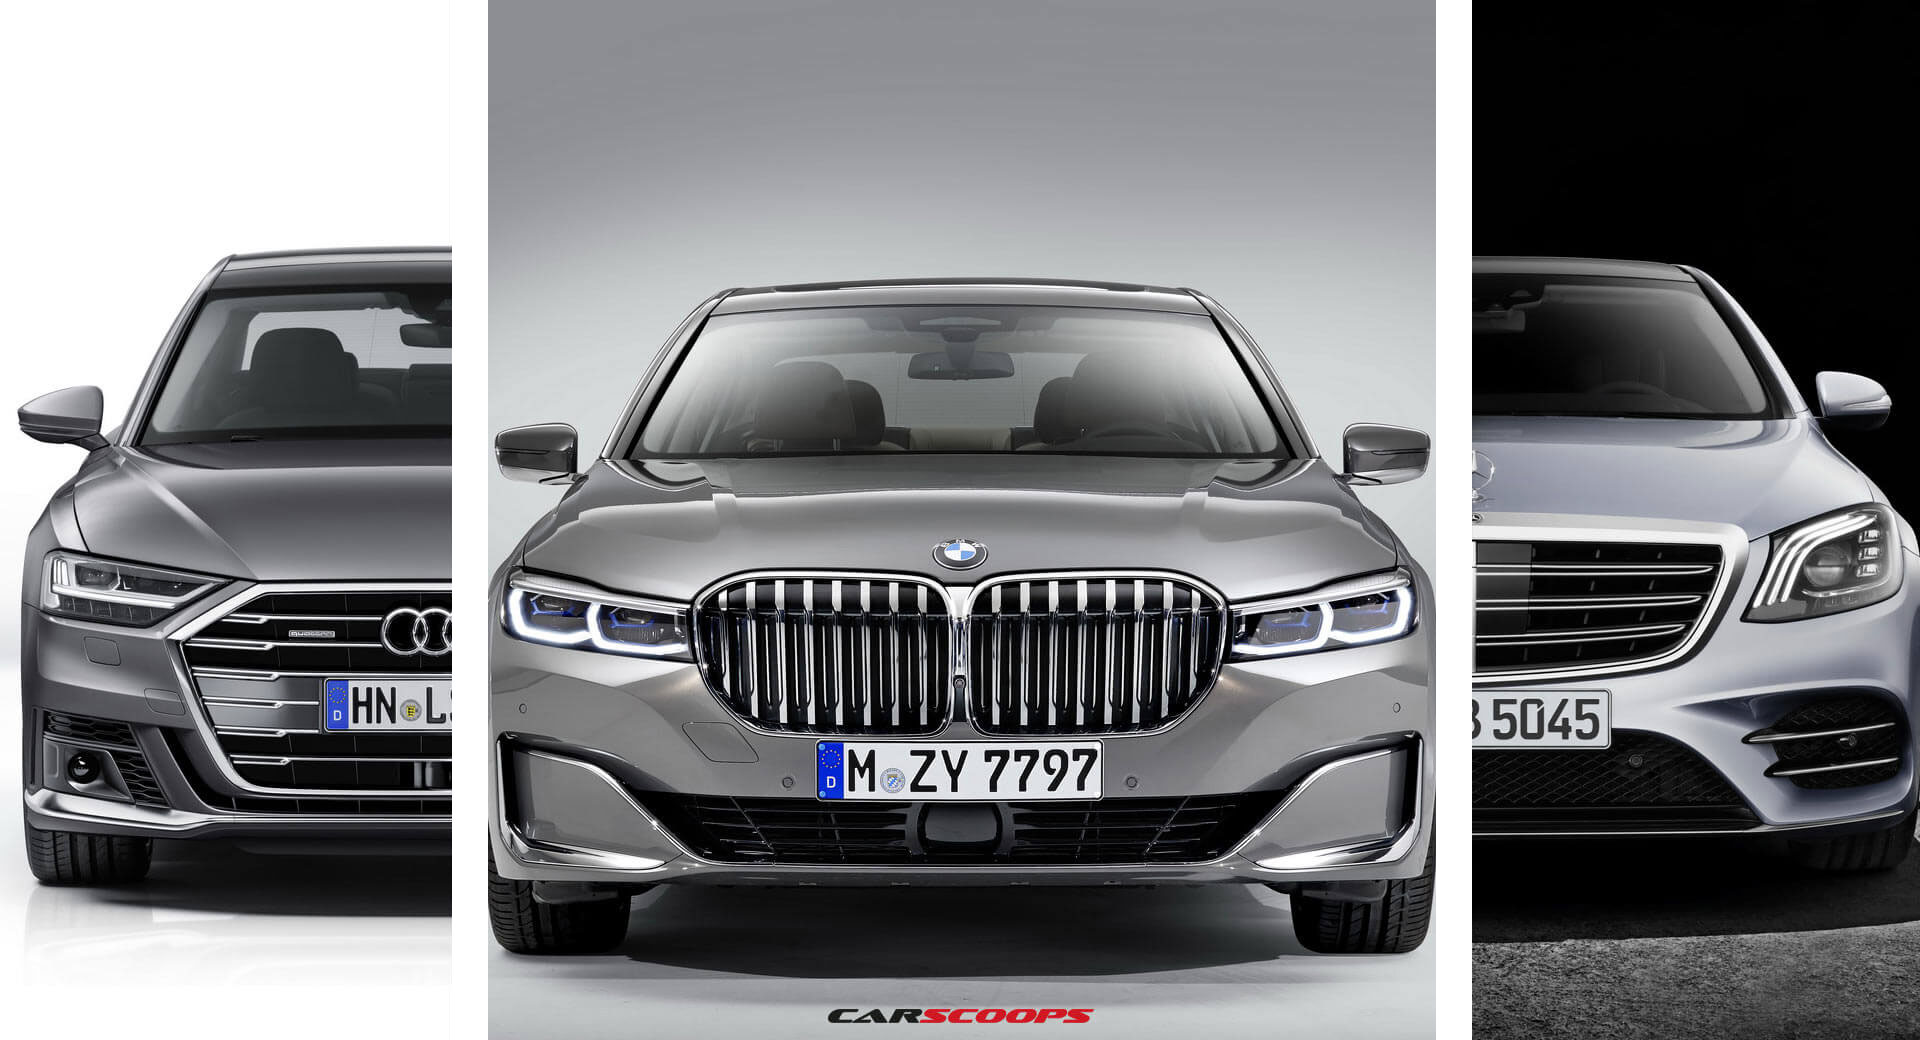 7 Serie Bmw 7 Series Facelift Vs Audi A8 Vs Mercedes S Class Poll What